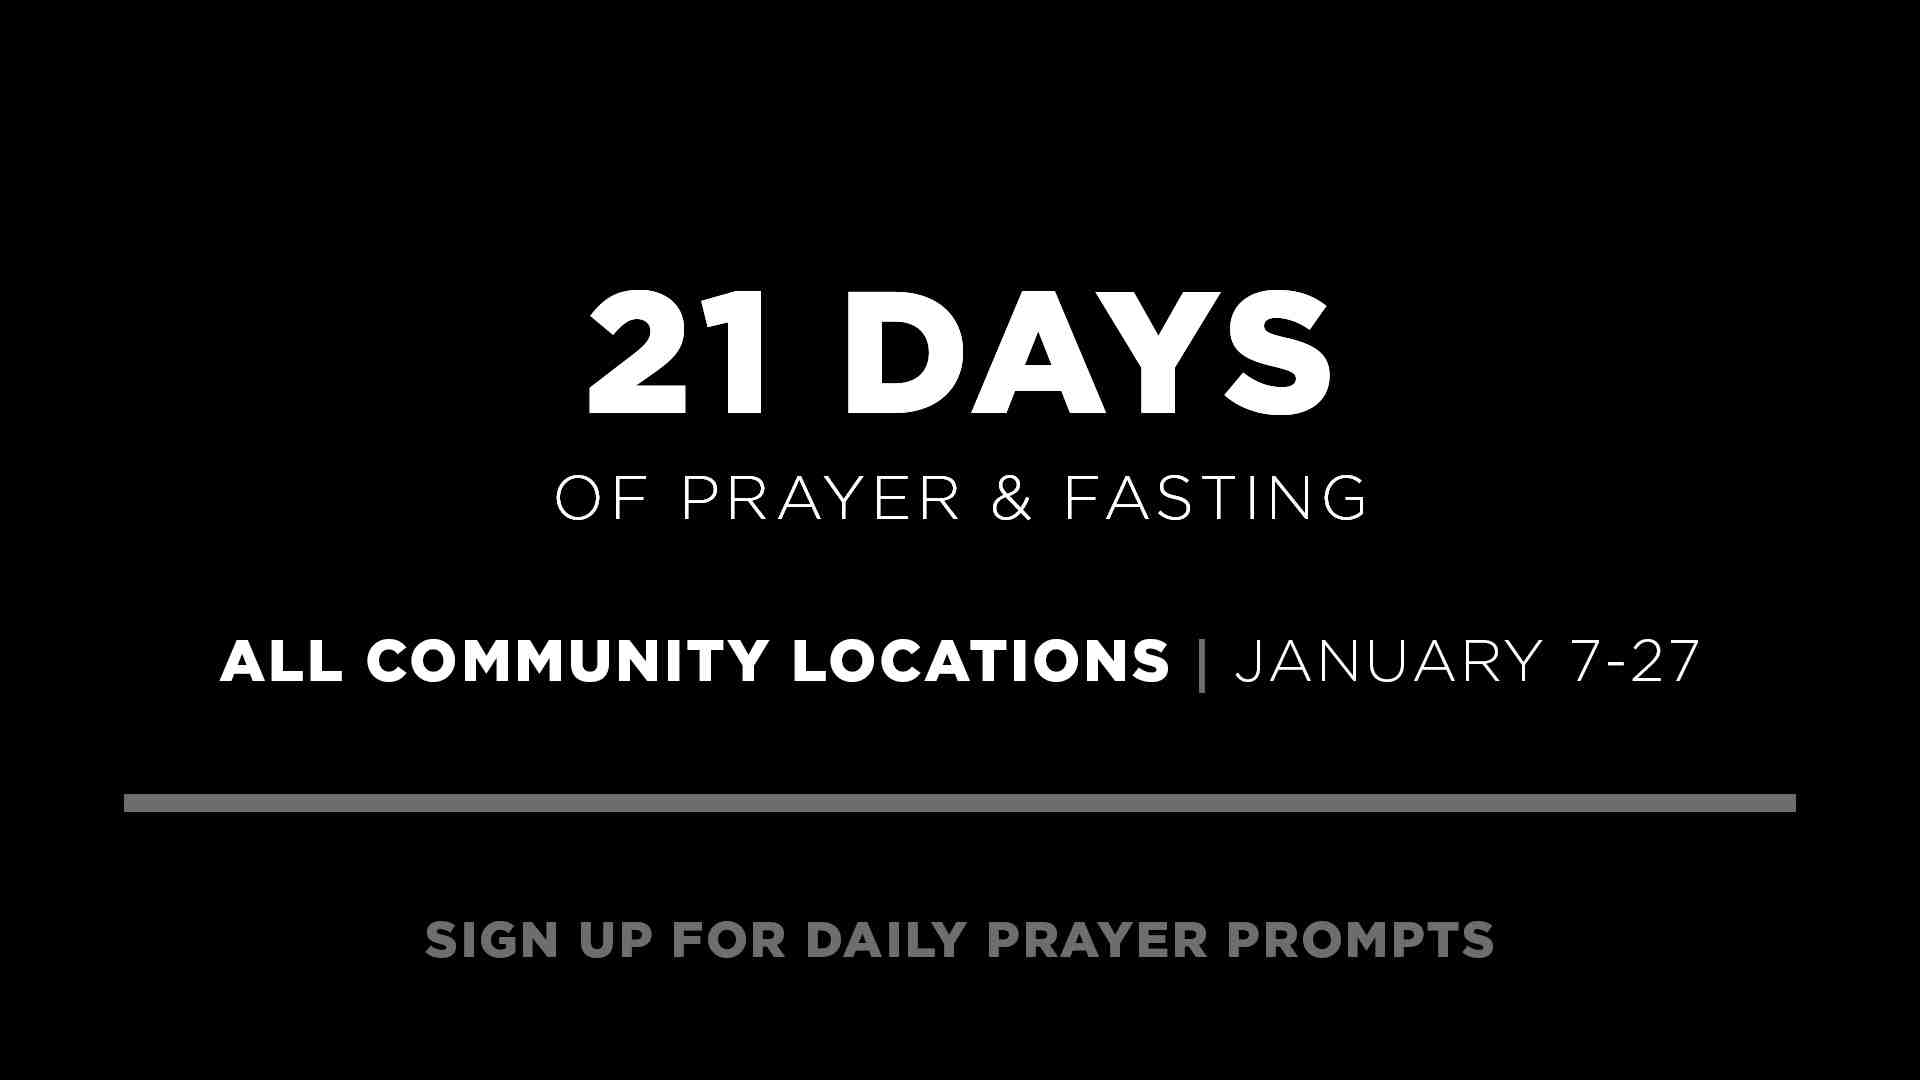 21days-dailyprayerprompt-sign-up2